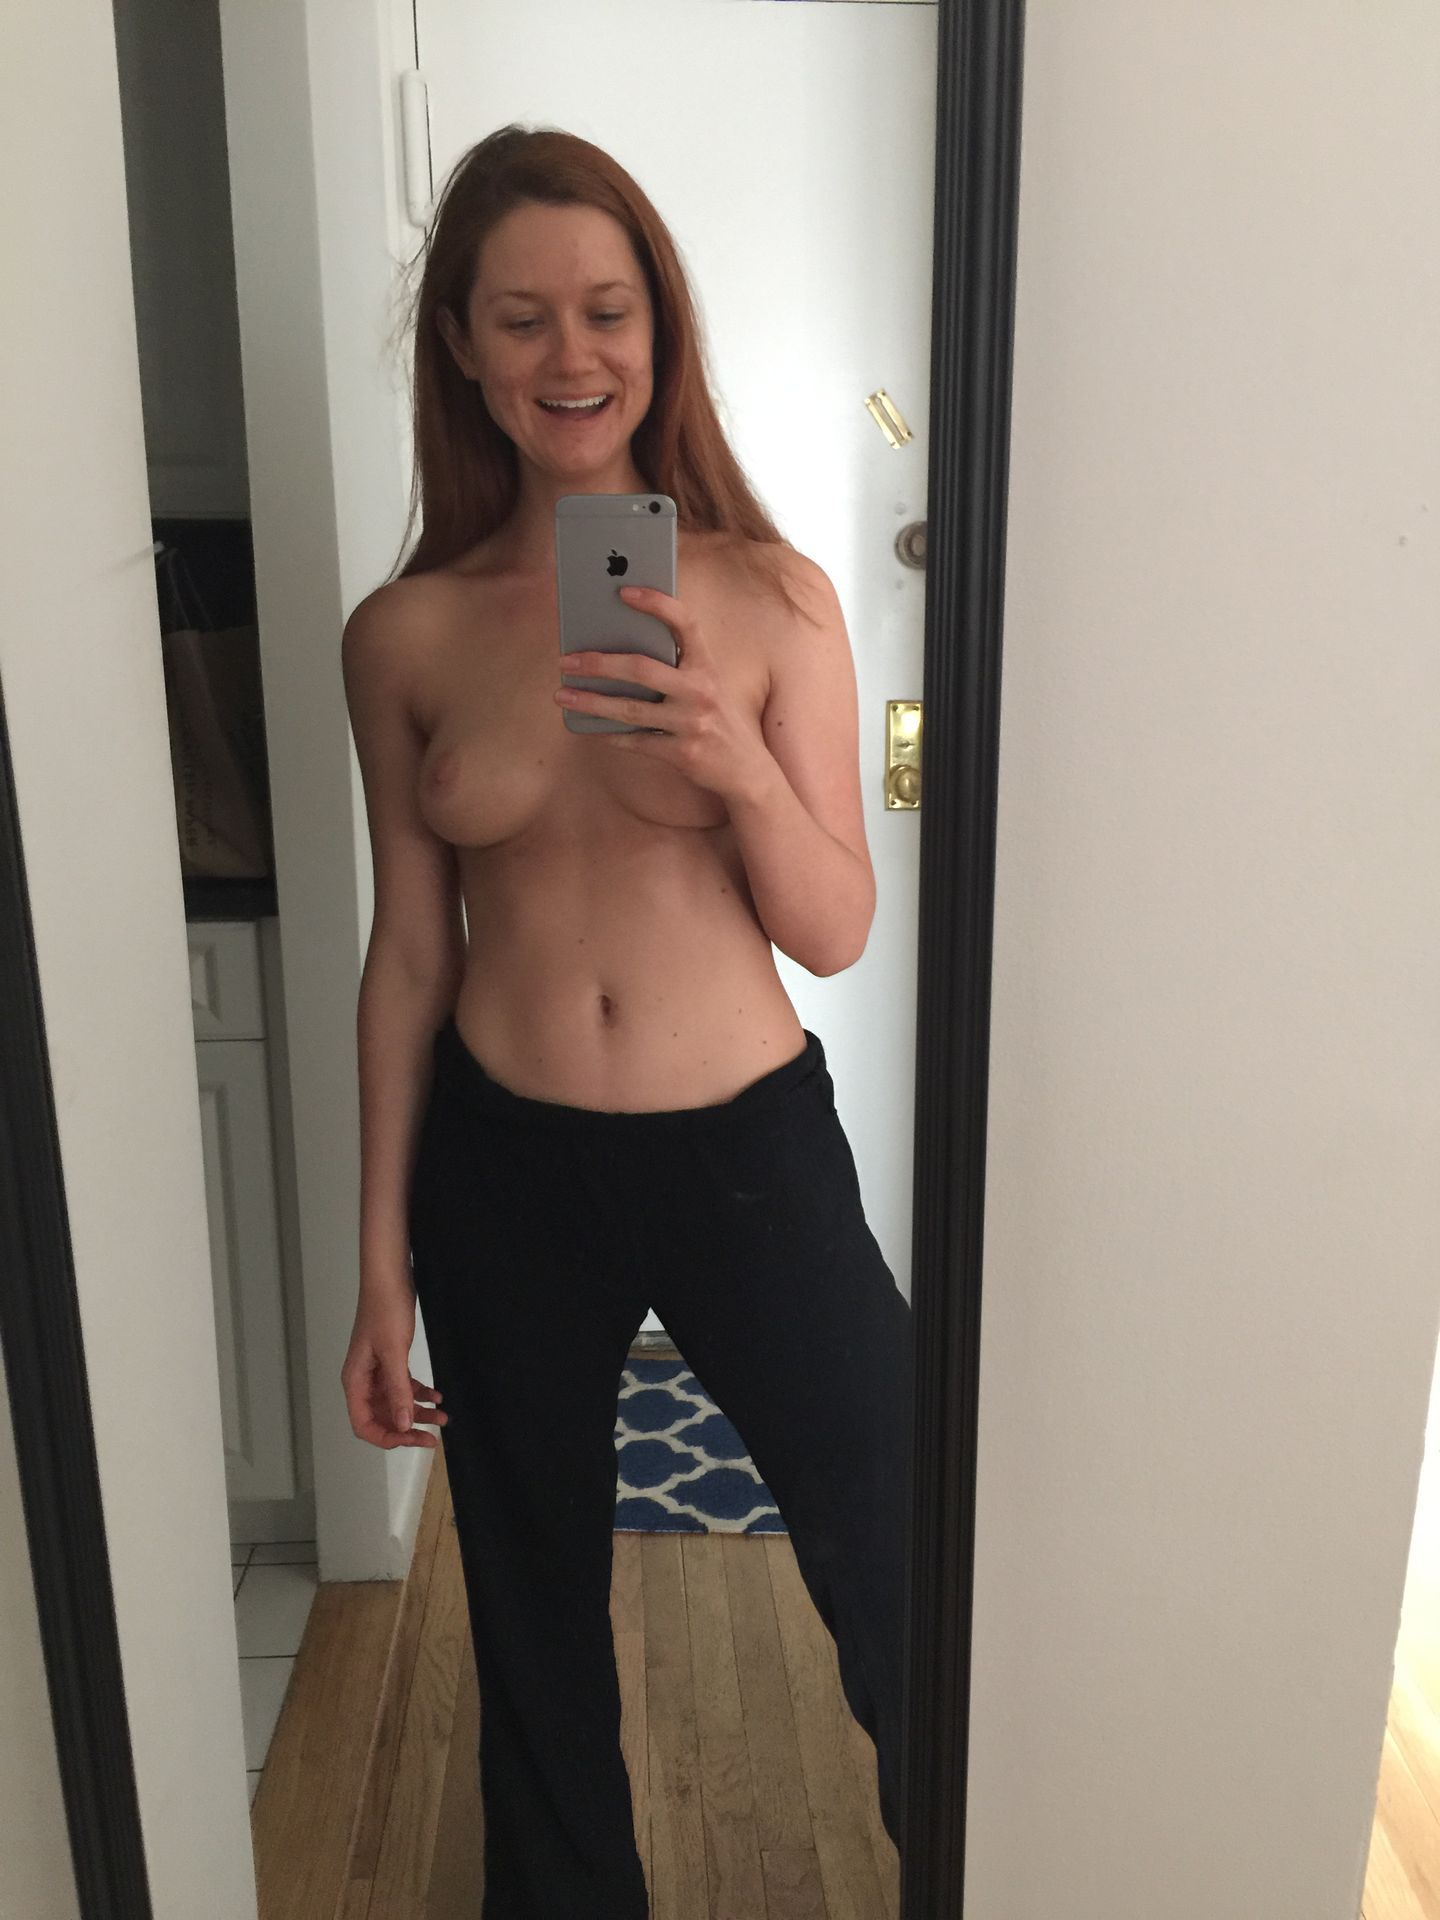 0510015727678_1_Bonnie-Wright-Nude-Topless-TheFappeningBlog.com-2.jpg